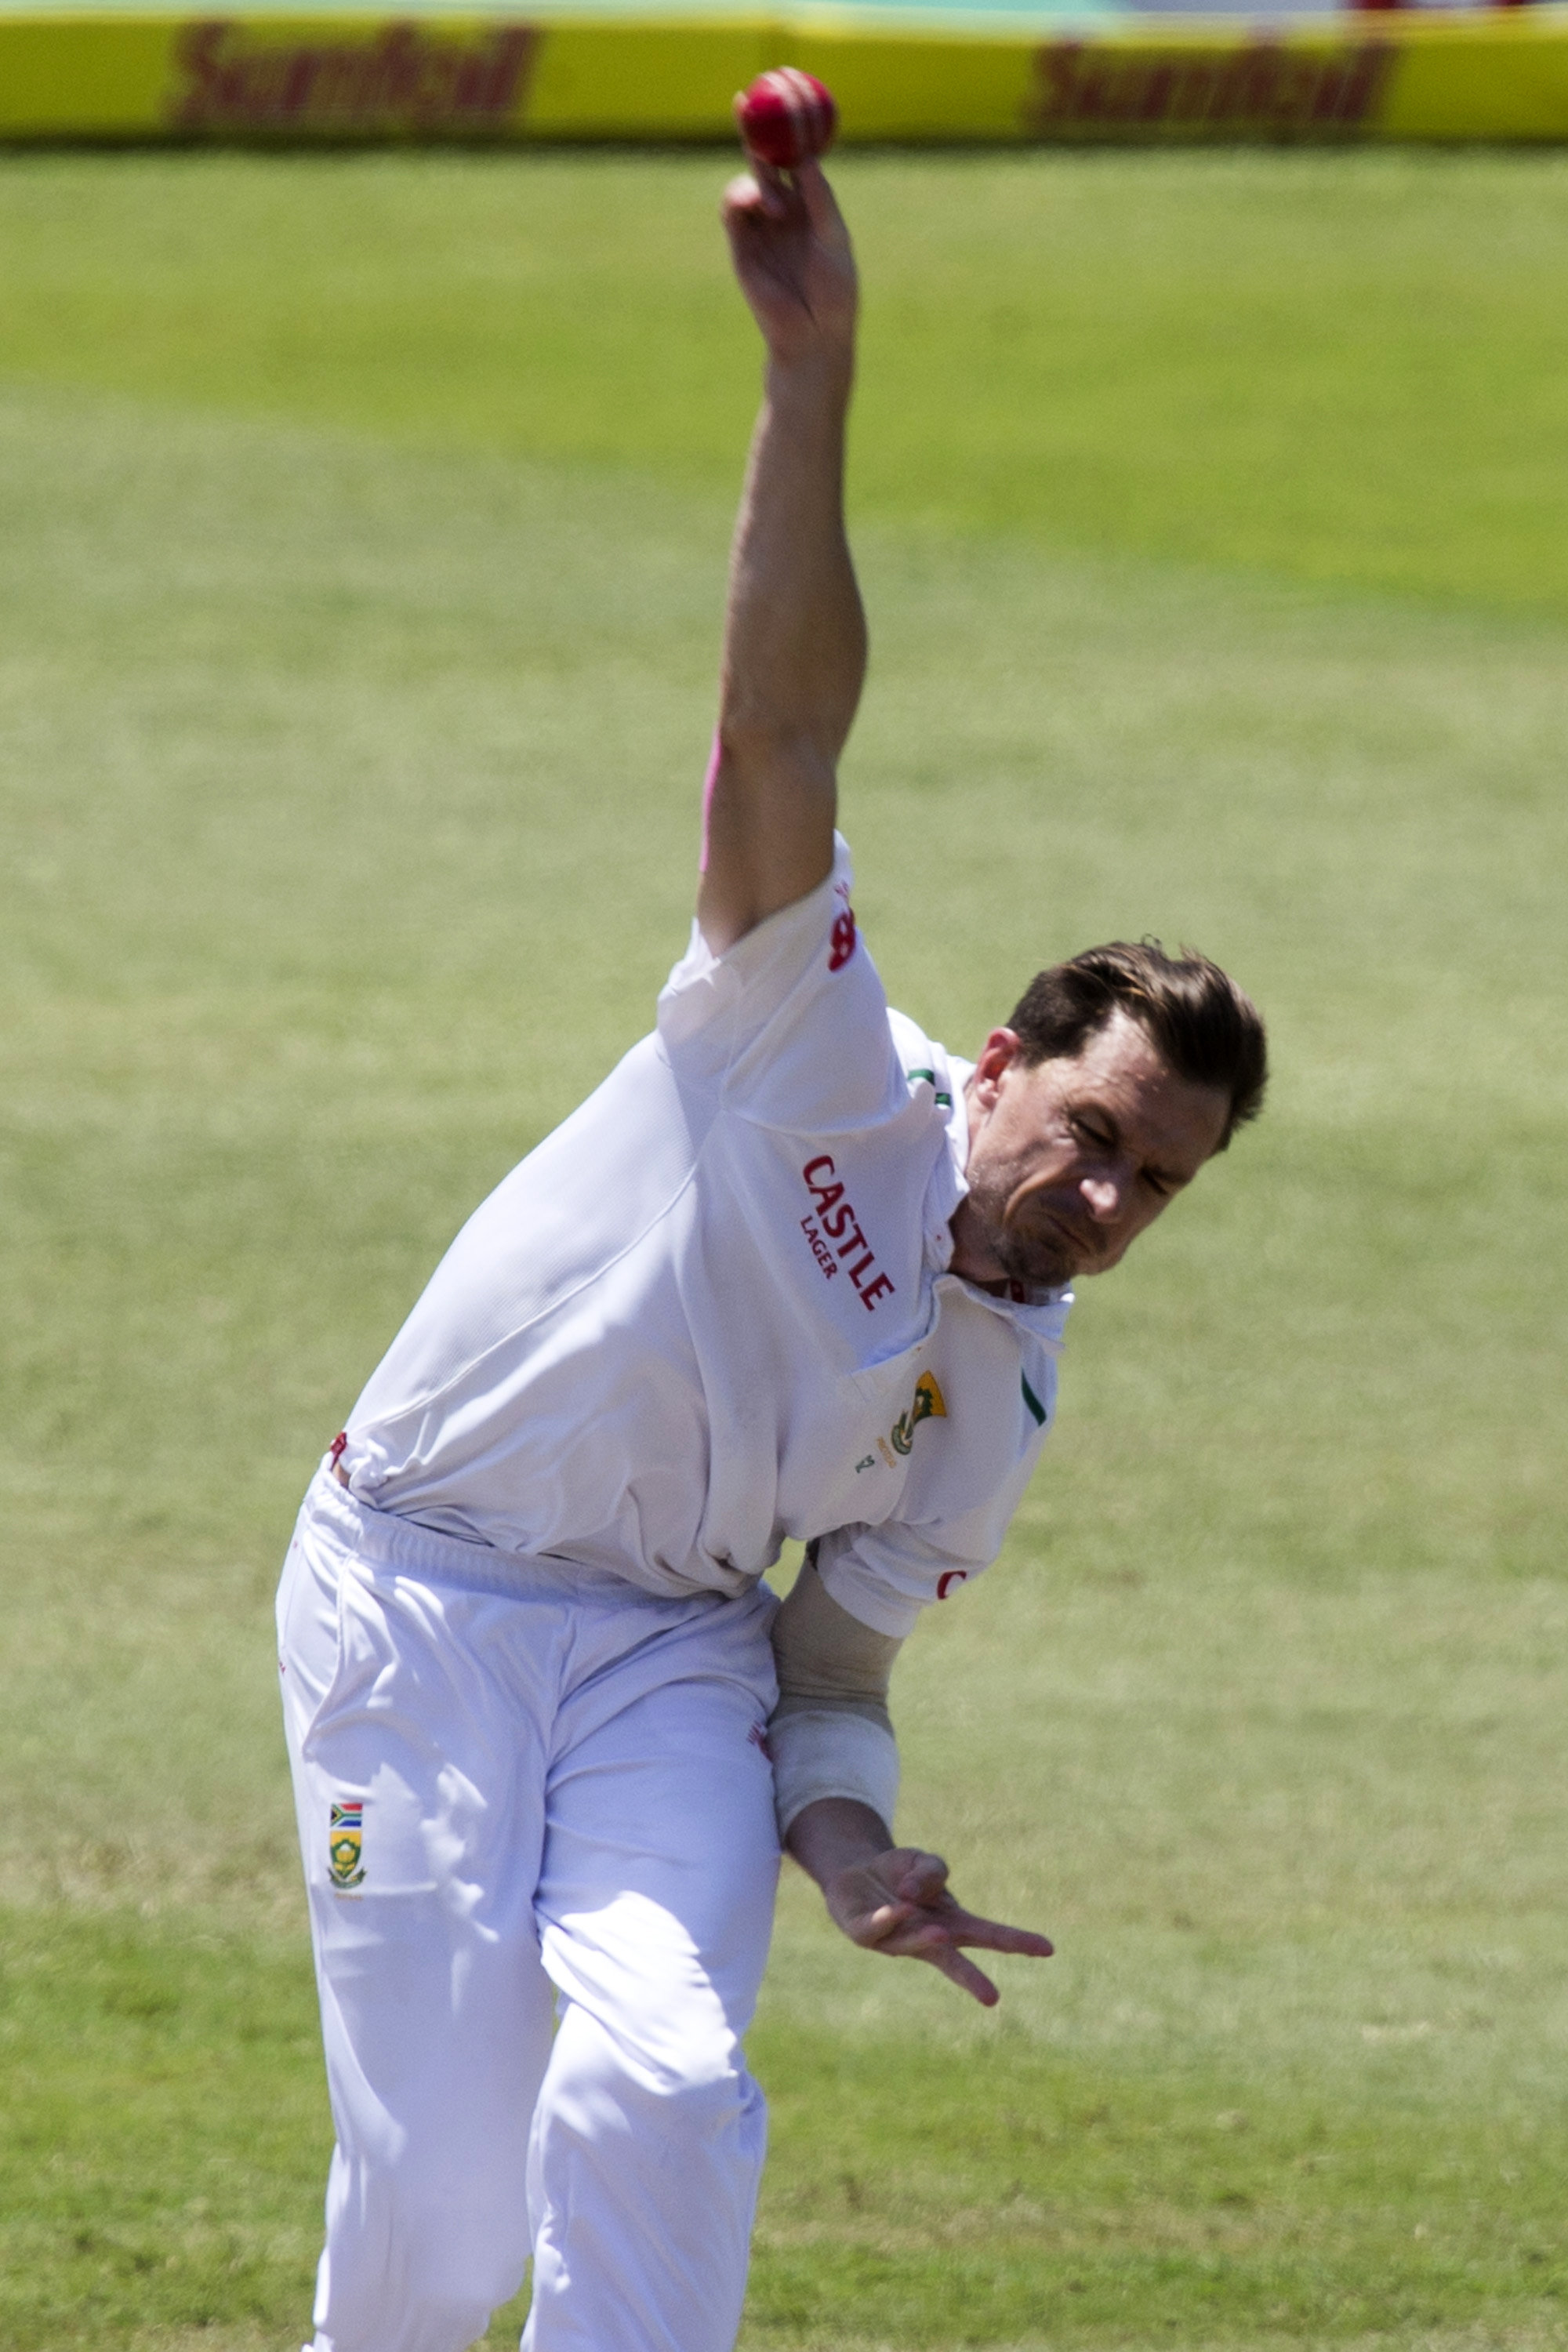 South Africa's Dale Steyn bowls during the first cricket test match against England in Durban, South Africa, December 28, 2015. Photo: Reuters